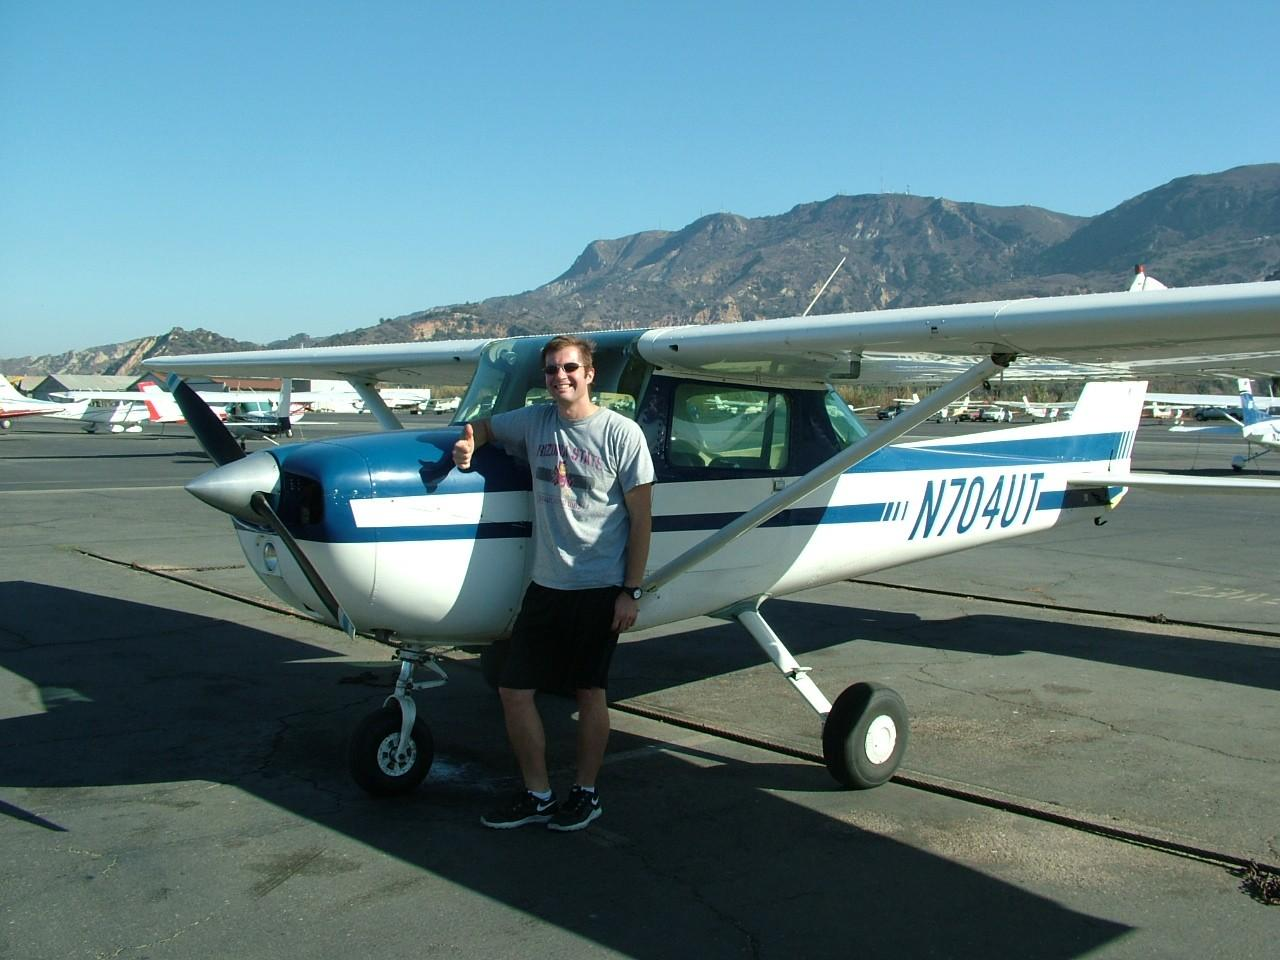 First Solo - Jason Peterson!